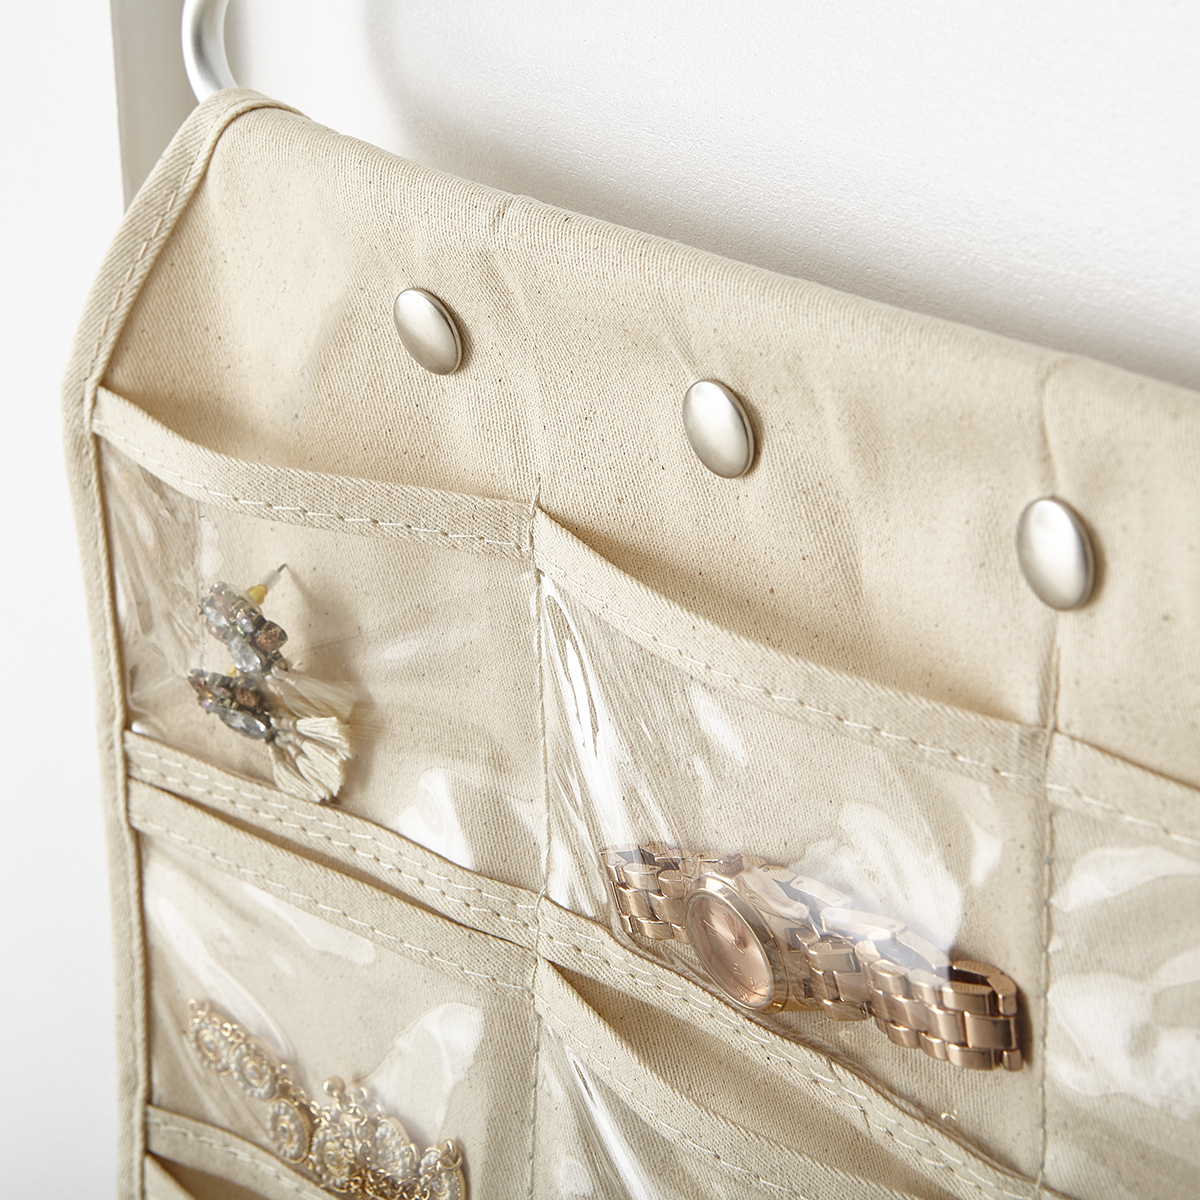 Hanging Jewelry Holder 80 Pocket Canvas Hanging Jewelry Organizer The Container Store